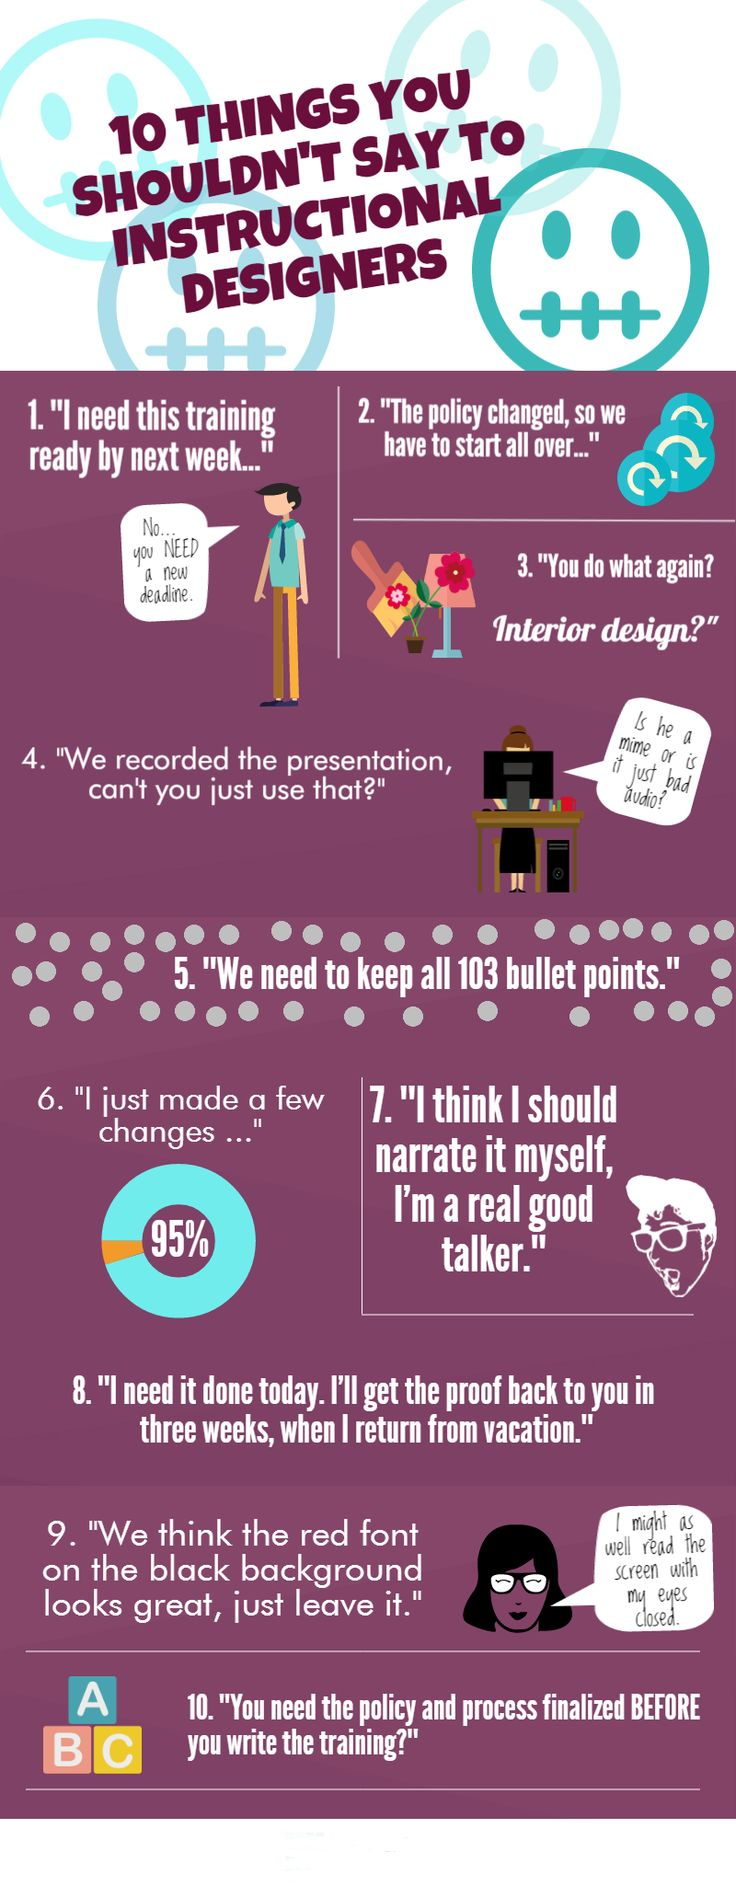 57 best learning development images on pinterest learning infographic 10 things you shouldnt say to instructional designers articulate e learning heroes site fandeluxe Image collections